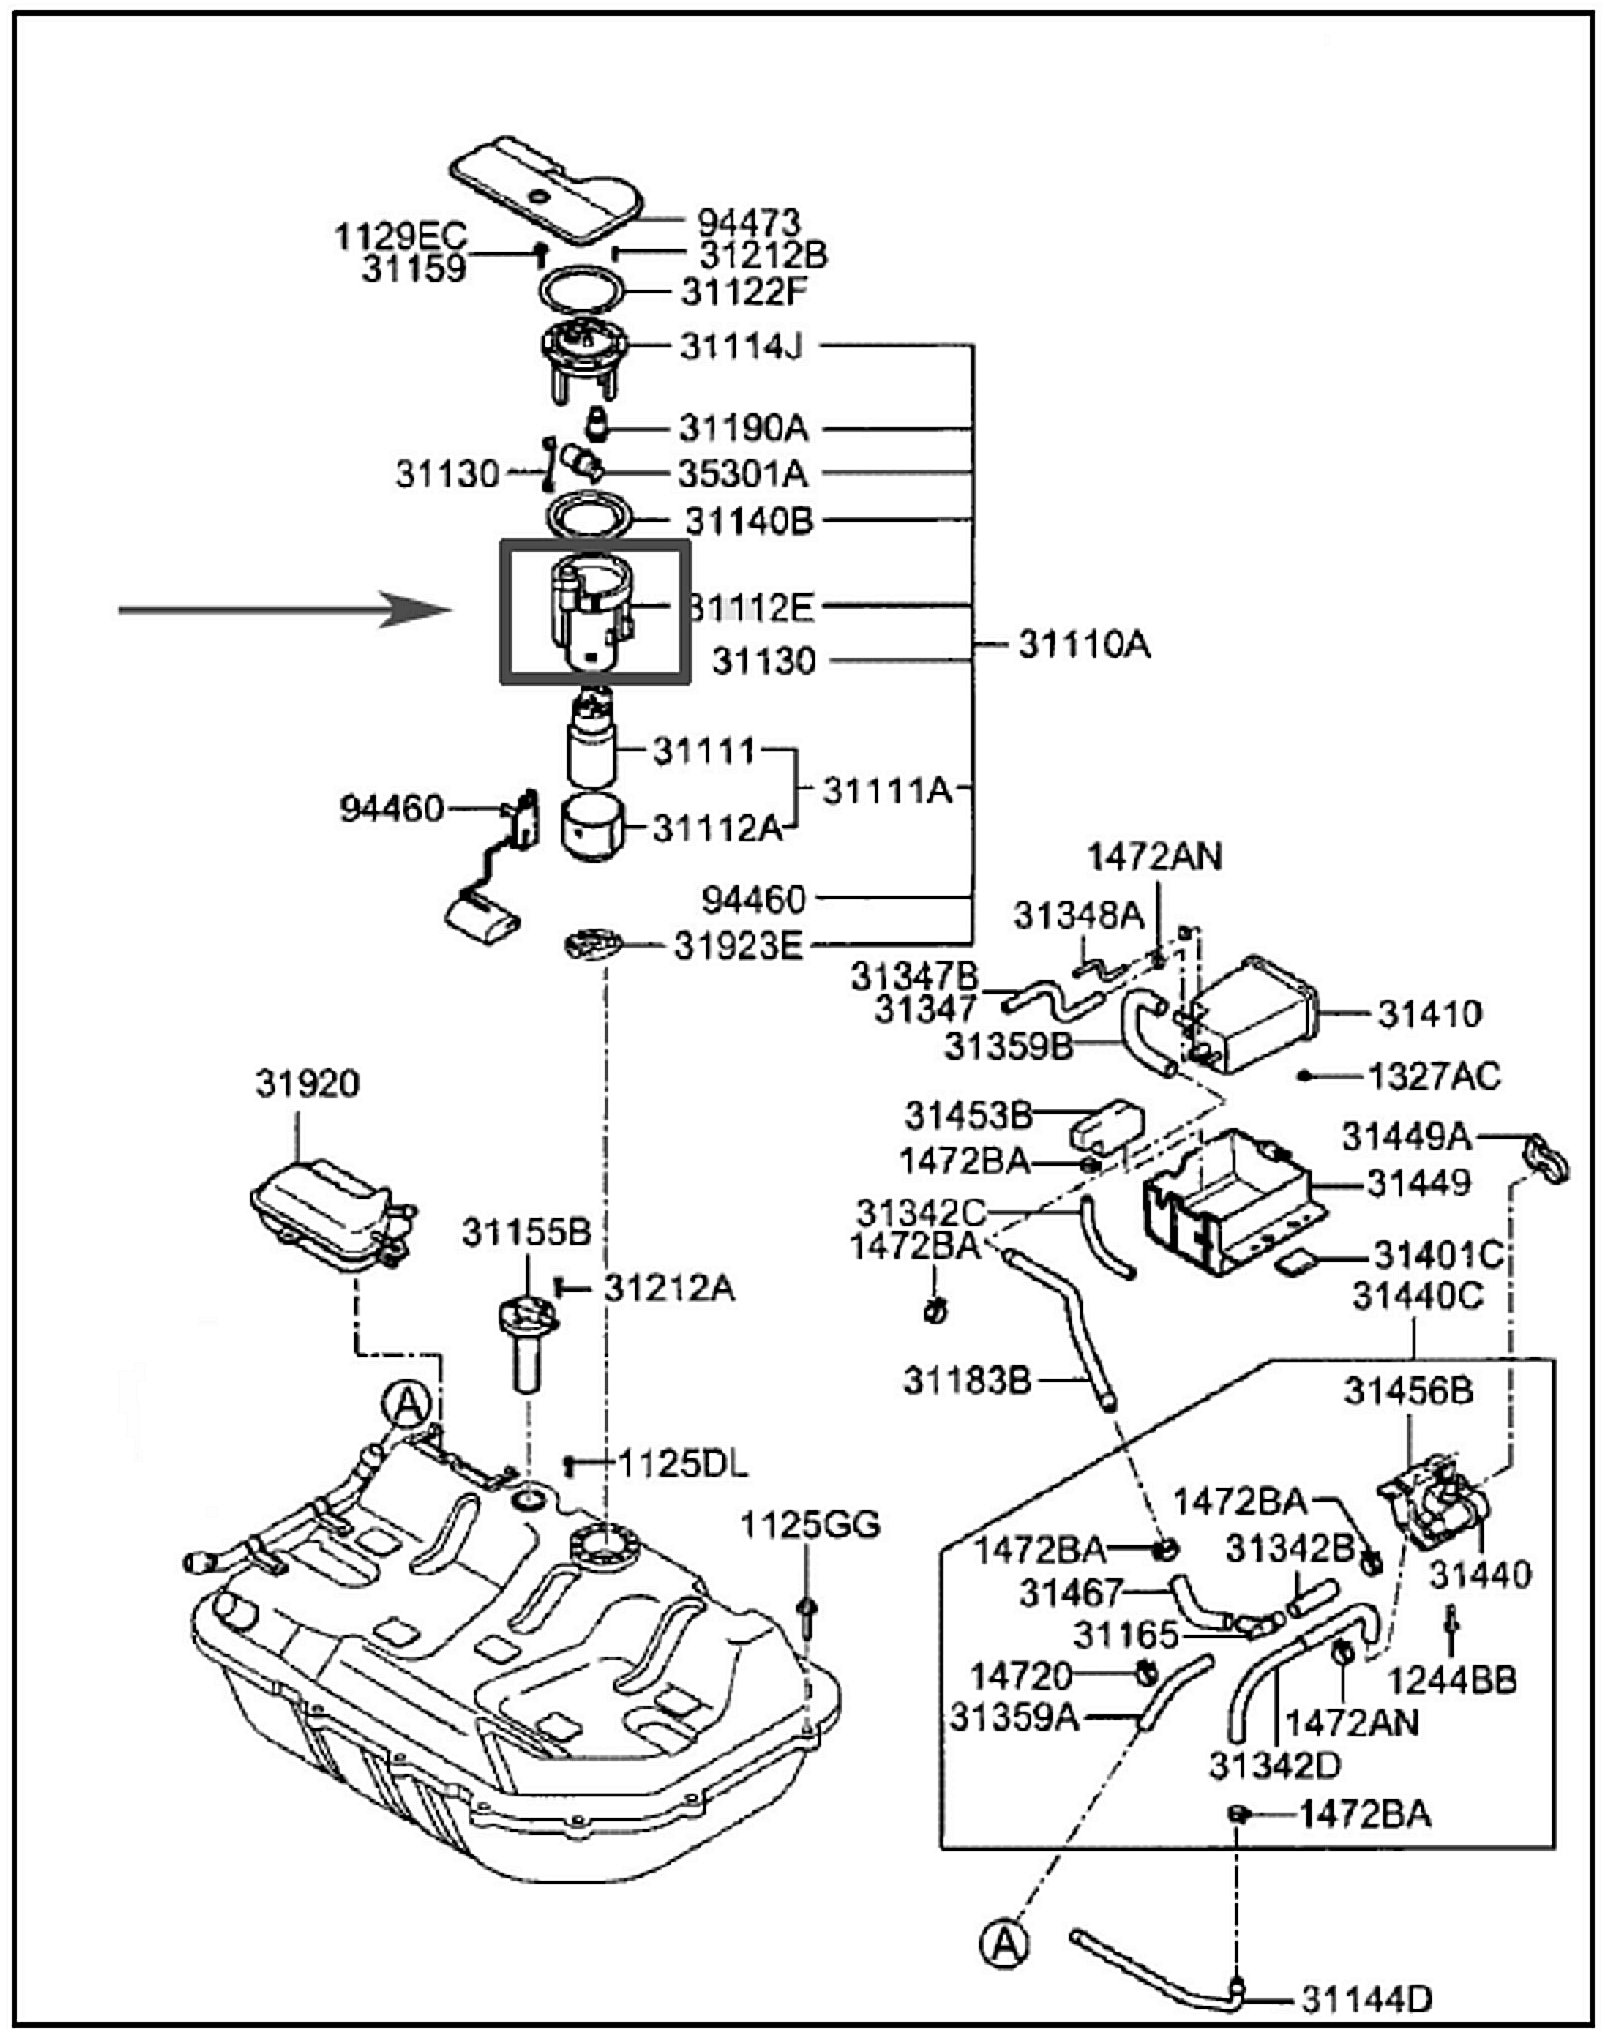 2006 2008 Hyundai Azera 3 8l Serpentine Belt Diagram likewise 72o0z Hyundai Santa Fe Hyundai Santa Fe 2005 Car together with Hyundai Accent Car Stereo Wiring Diagram moreover How To Replace Timing Chain On Hyundai Getz 1 6 2005 further Index. on hyundai tucson engine